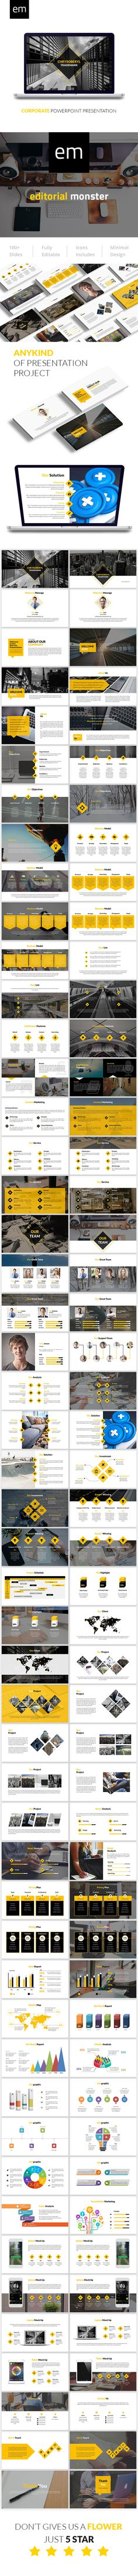 Corporate Powerpoint Presentation Template  • Only available here ➝ http://graphicriver.net/item/corporate-powerpoint-presentation-template/16816647?ref=pxcr